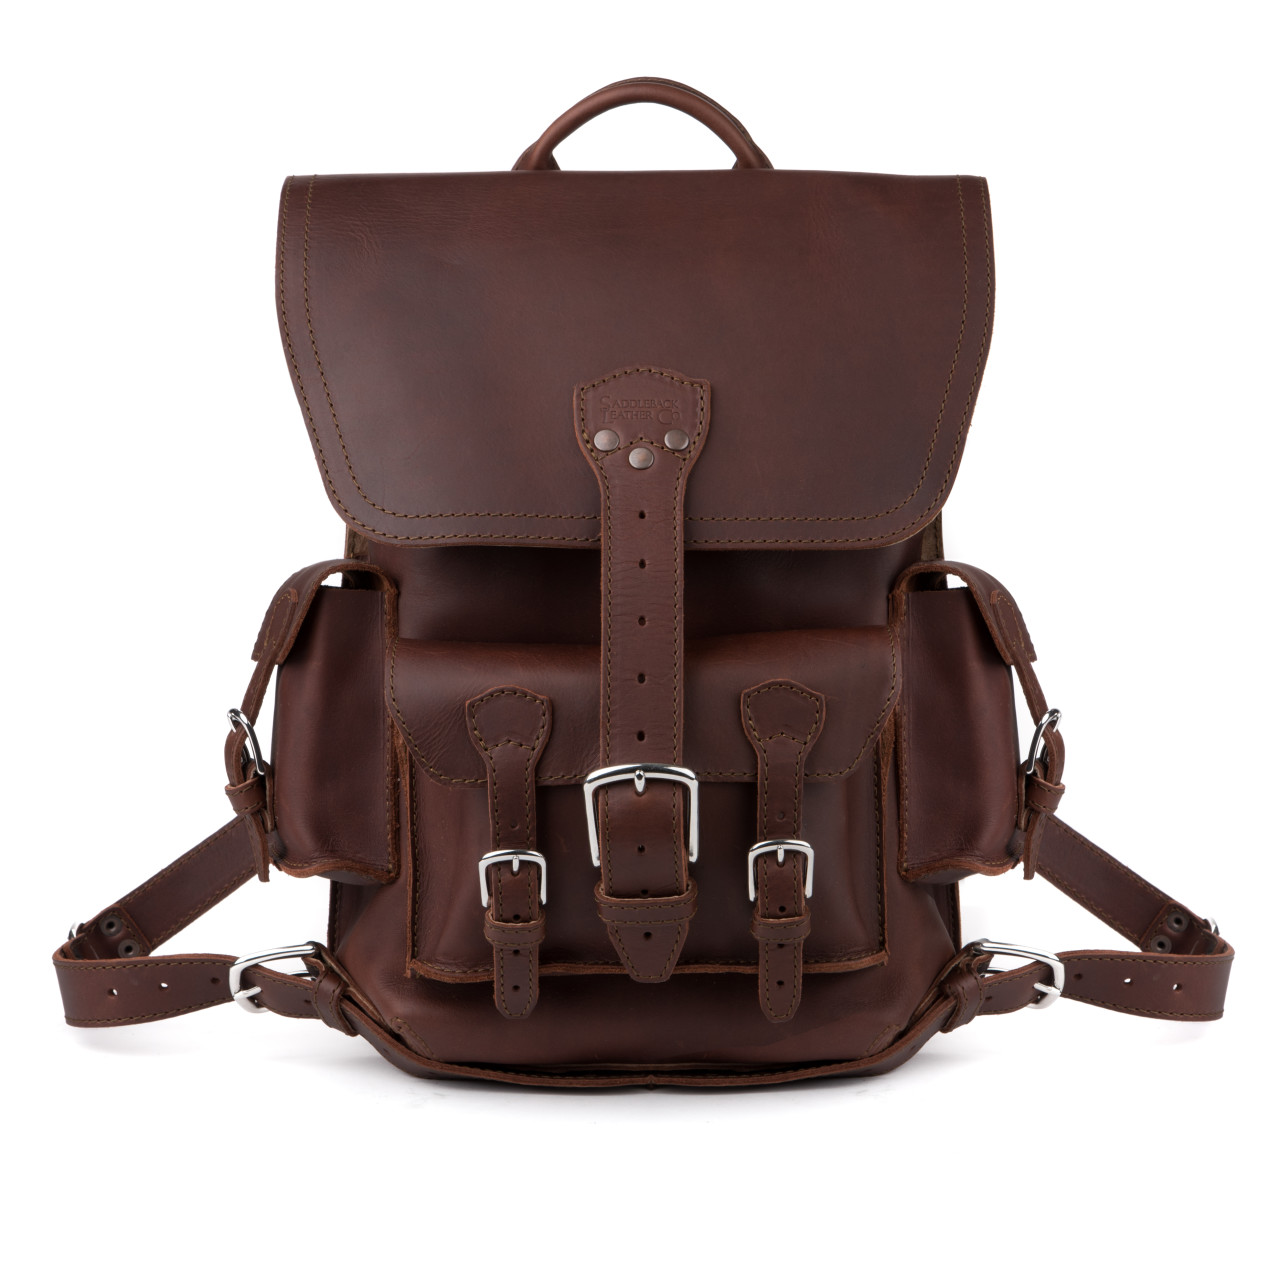 Thin Front Pocket Backpack - Chestnut (10% Discount)